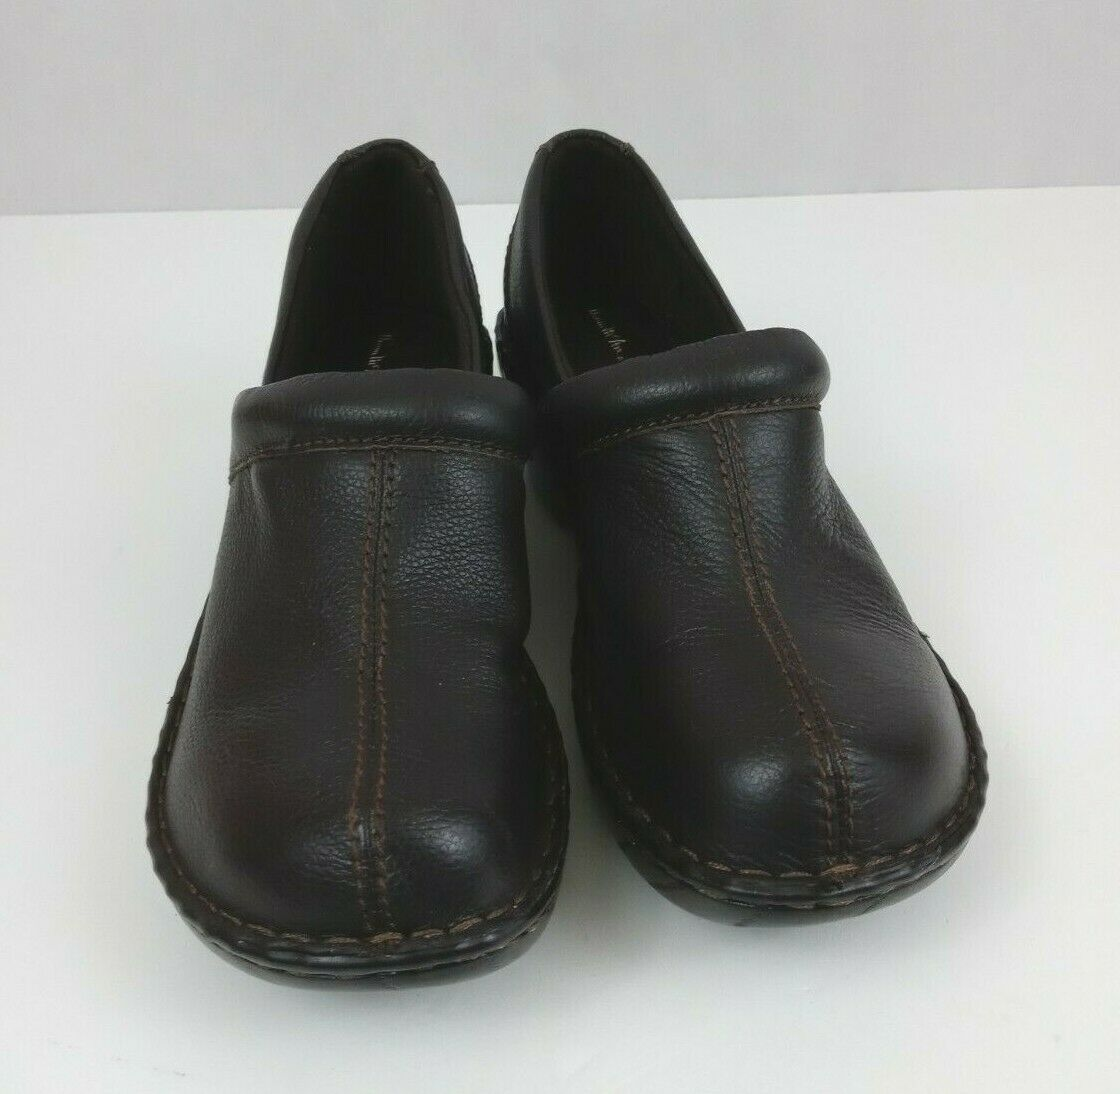 Thom McAn Womens Brown Leather Mules Clogs Slip-On Shoes Size 10W